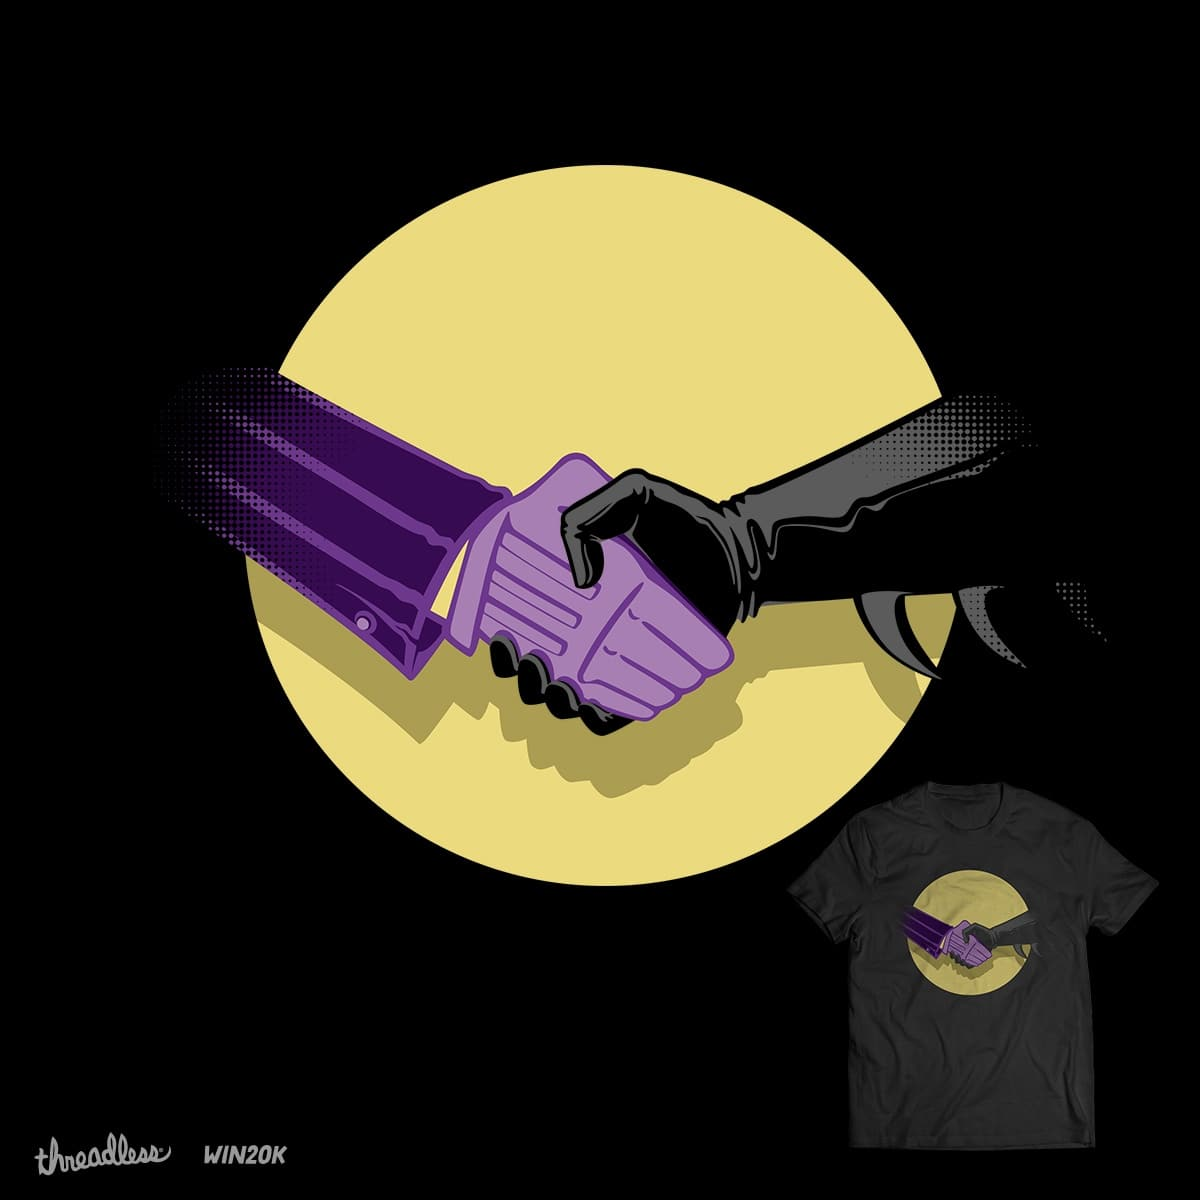 A truce for peace by taelg on Threadless